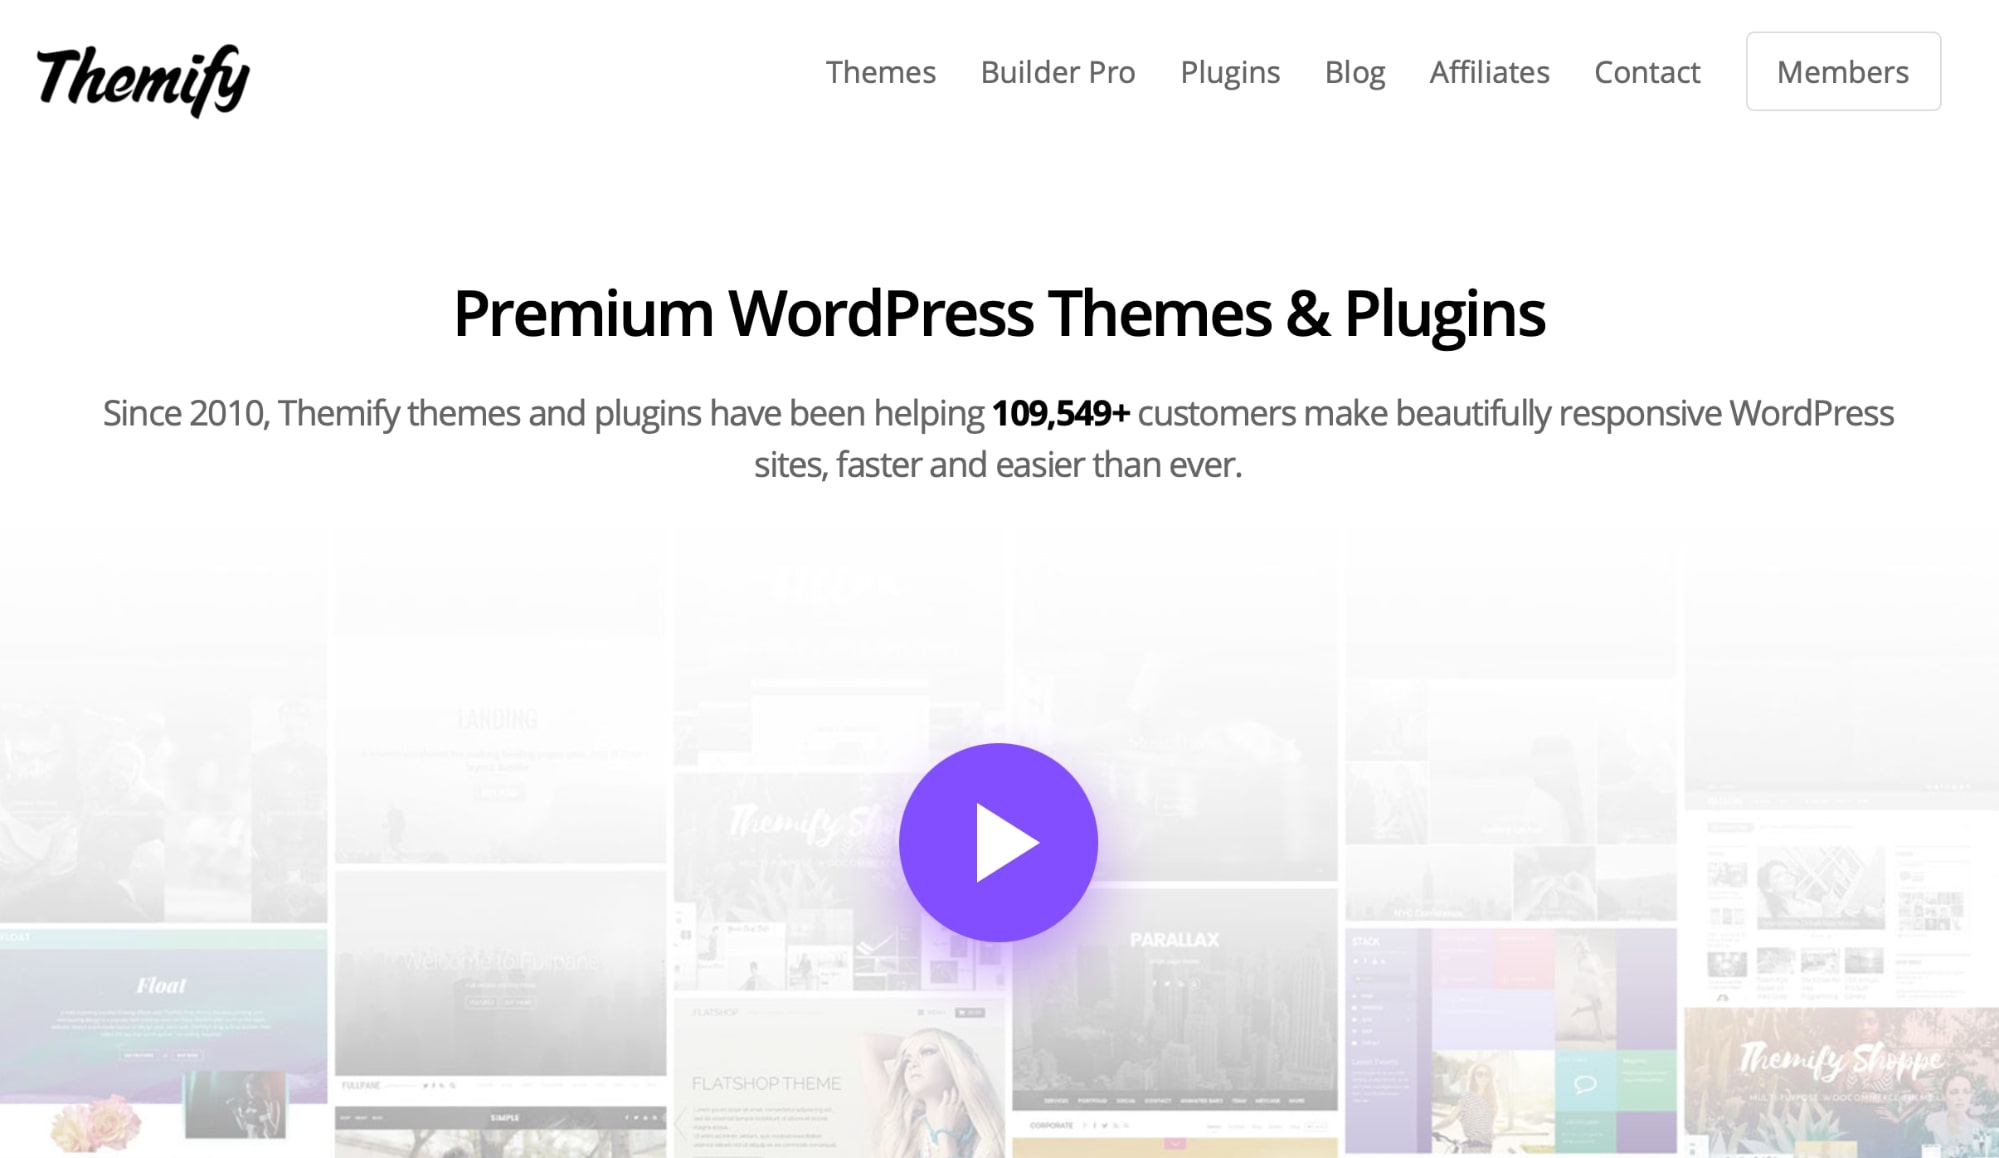 Themify Theme and Page Builder